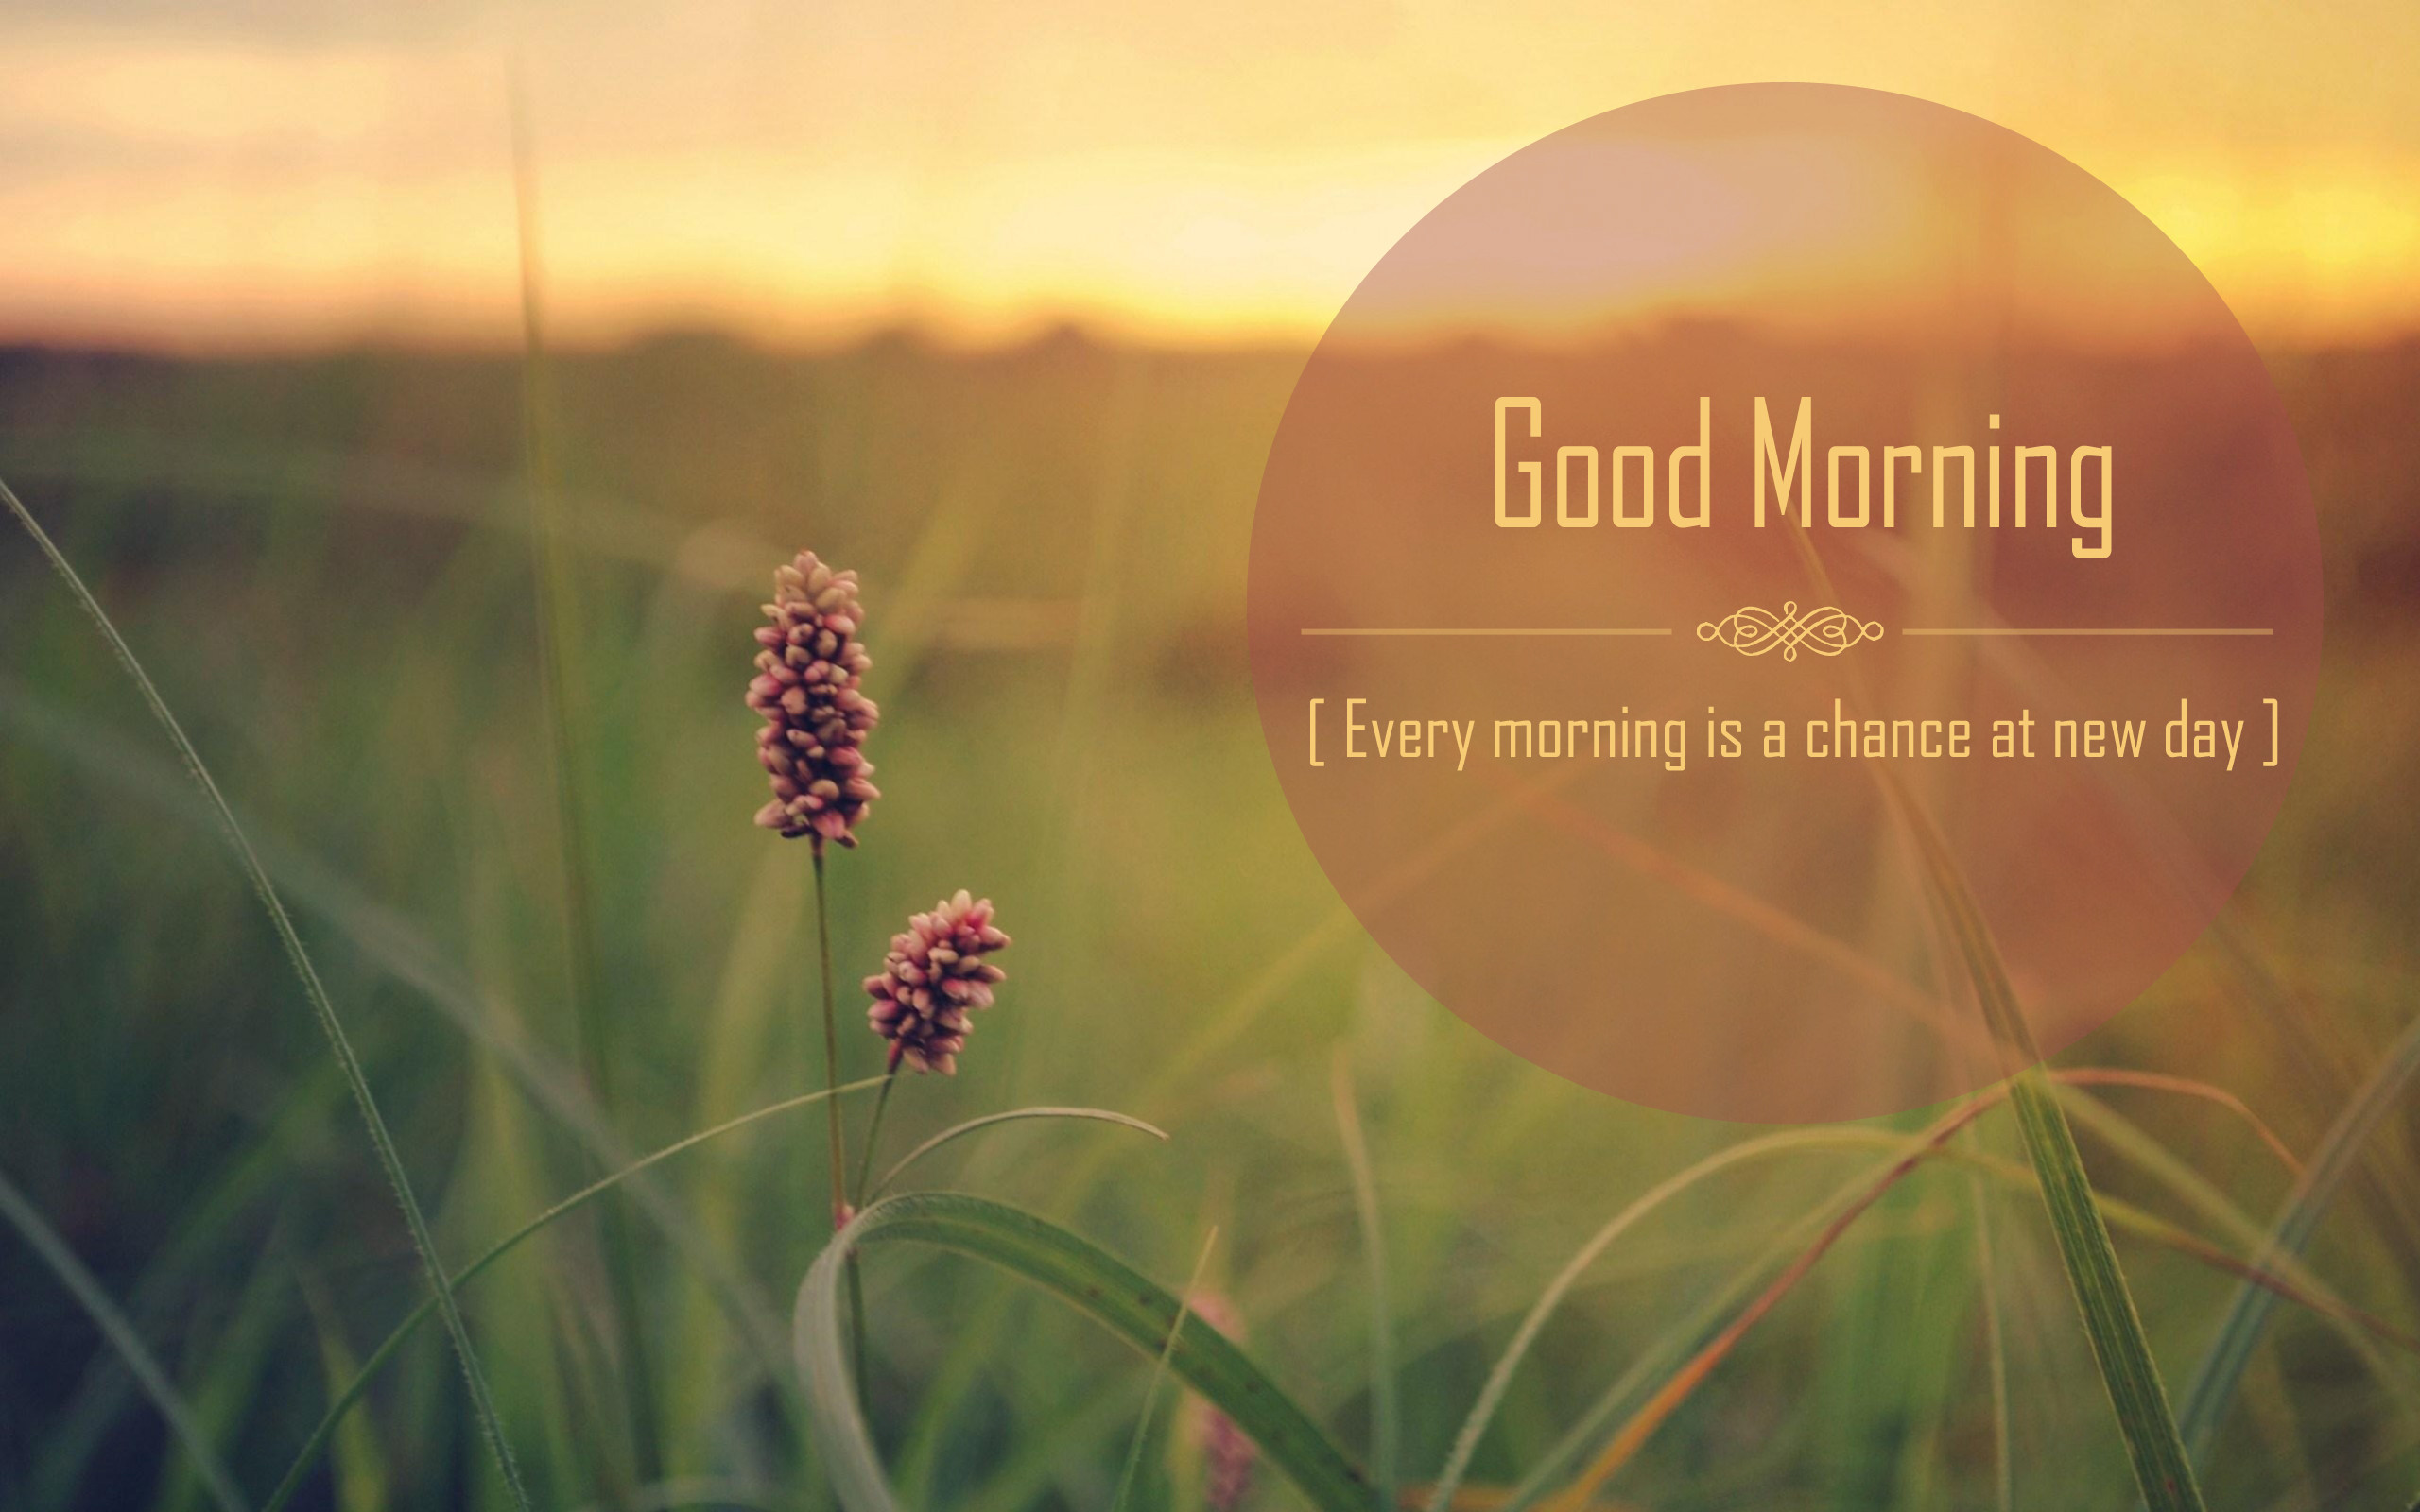 Good Morning Quotes New Day : Best good morning quotes